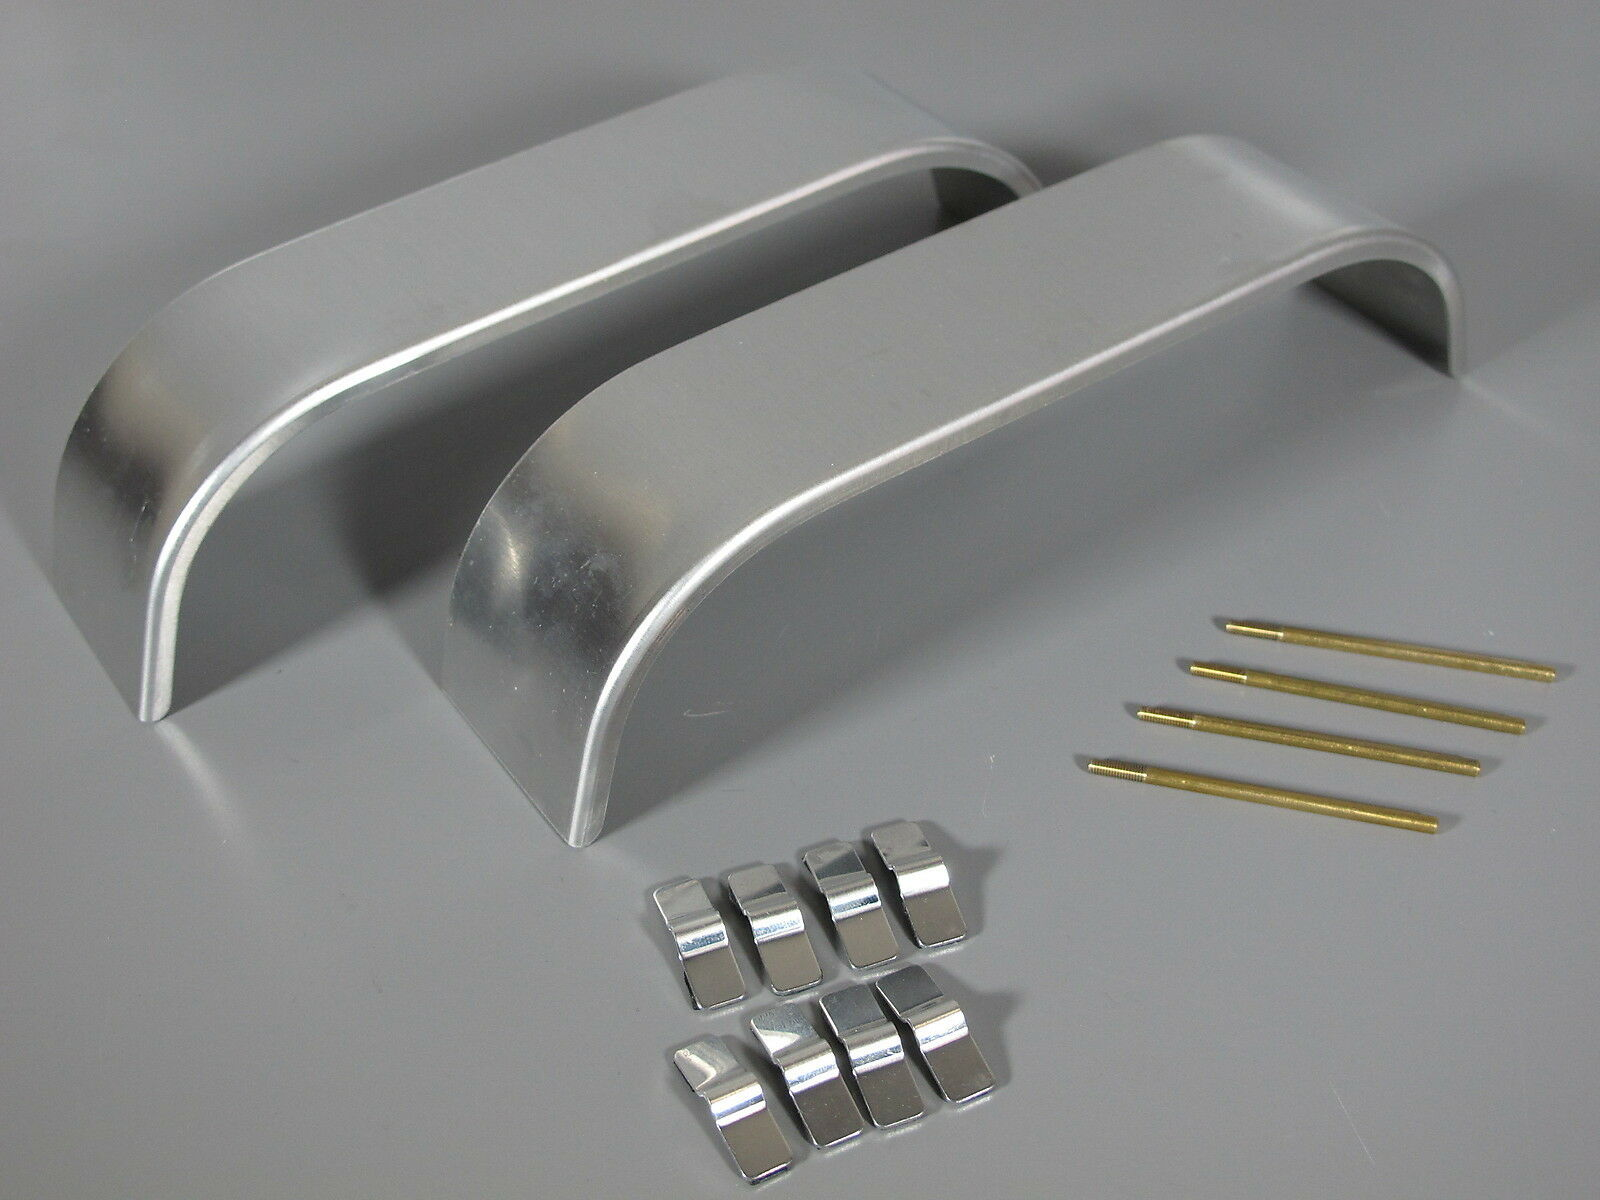 Nuovo Pair Aluminum Dully Fender for for for Tamiya RC  giocattolo  1 14 re Gre Knight Hauler cdecd2